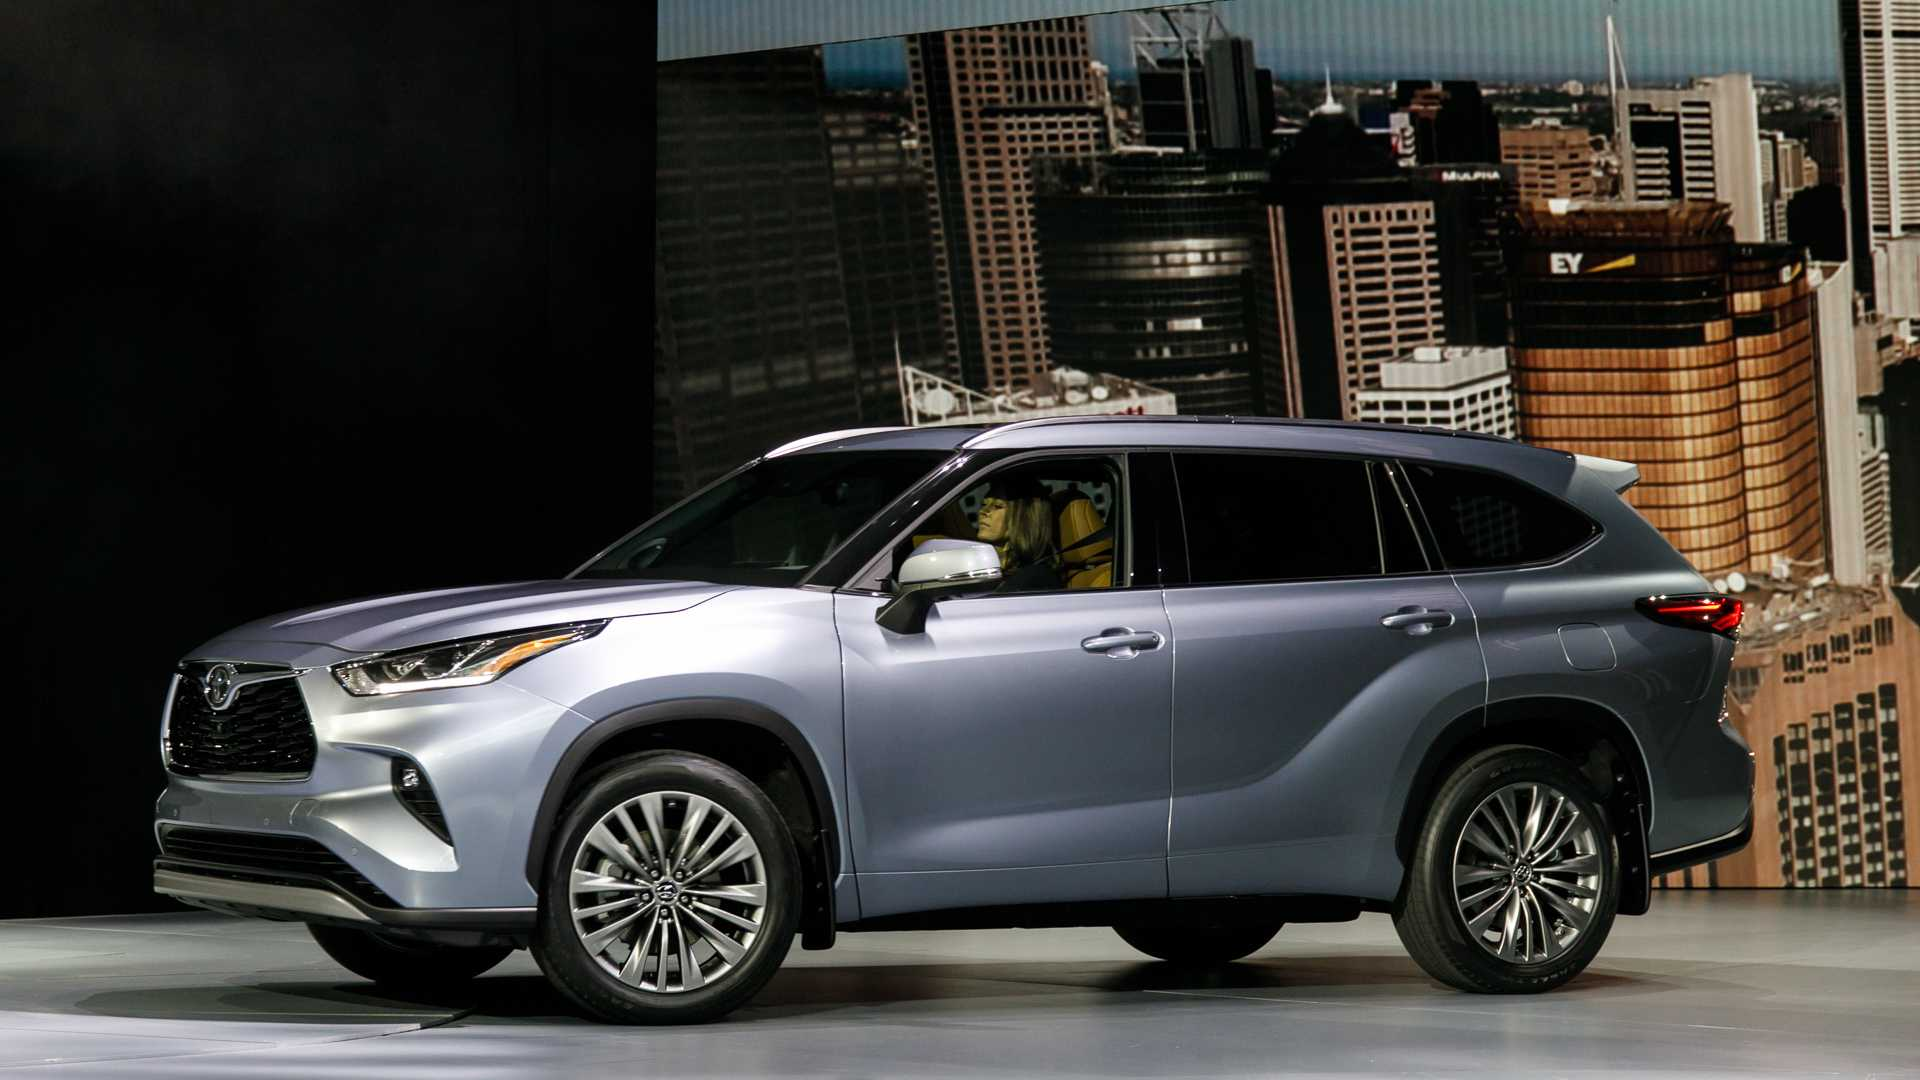 21 Best Toyota Kluger 2020 Model Specs And Review